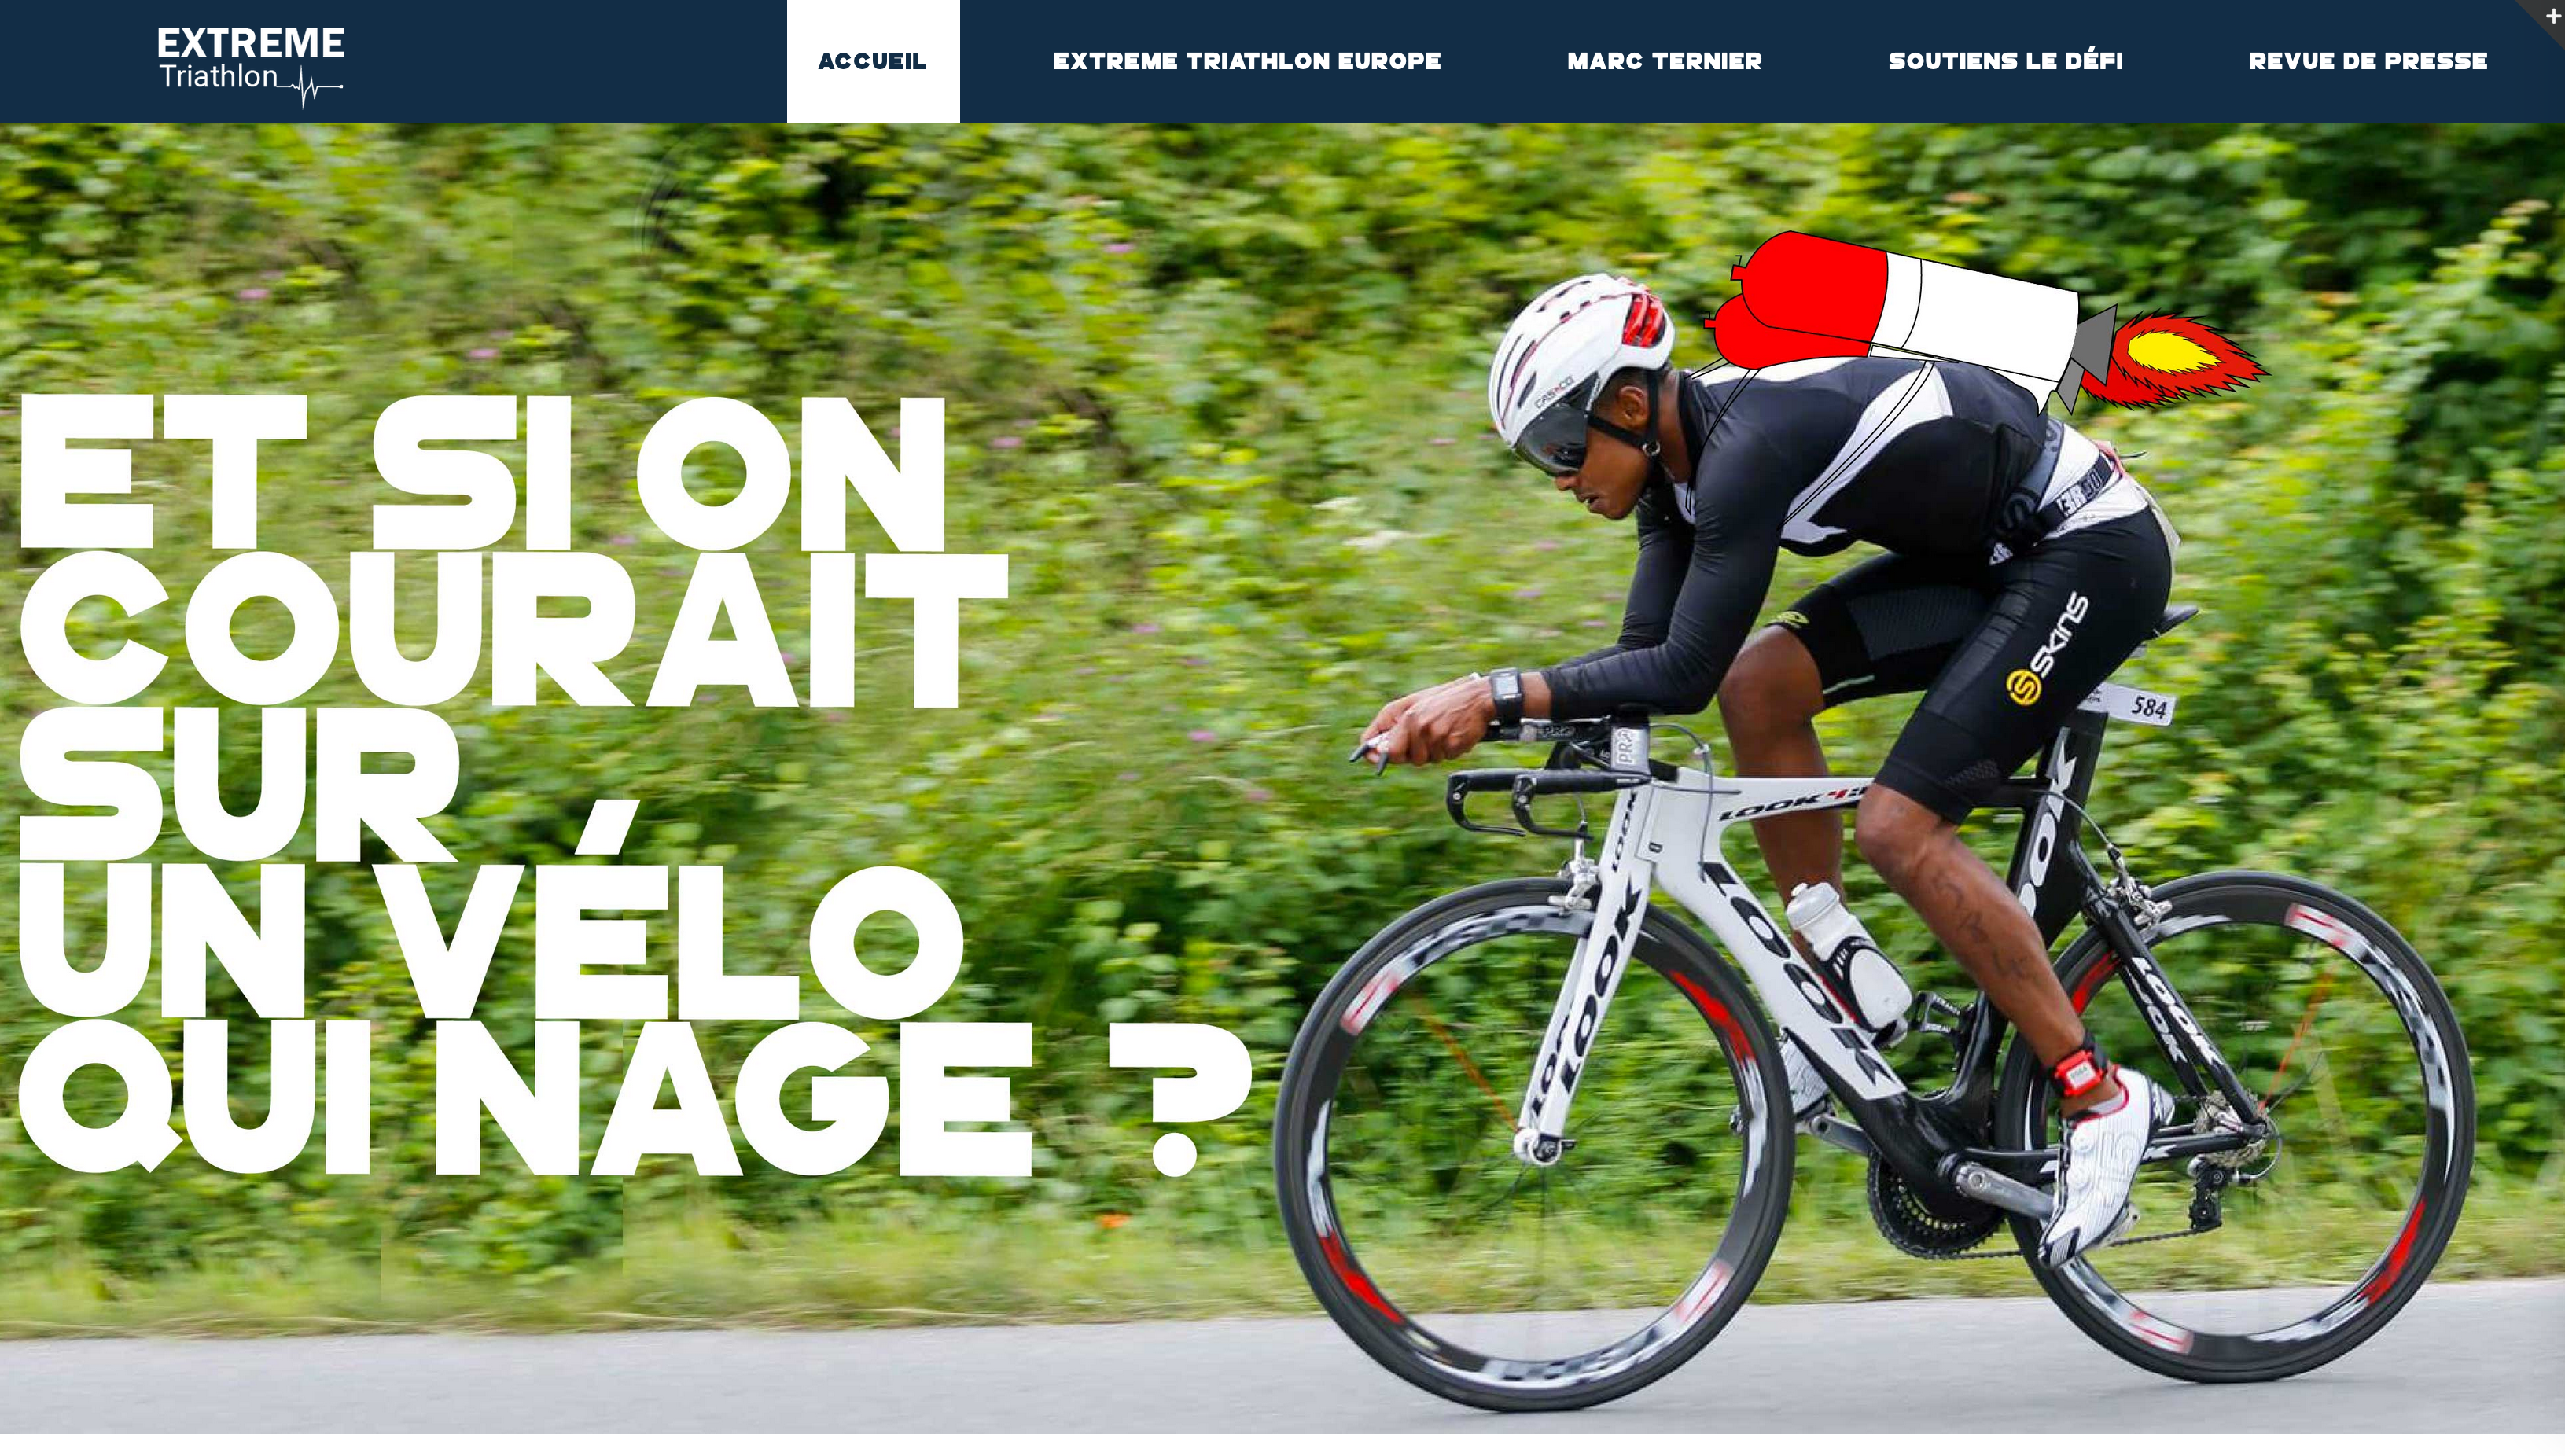 Projet Extreme triathlon Digital Campus Bordeaux